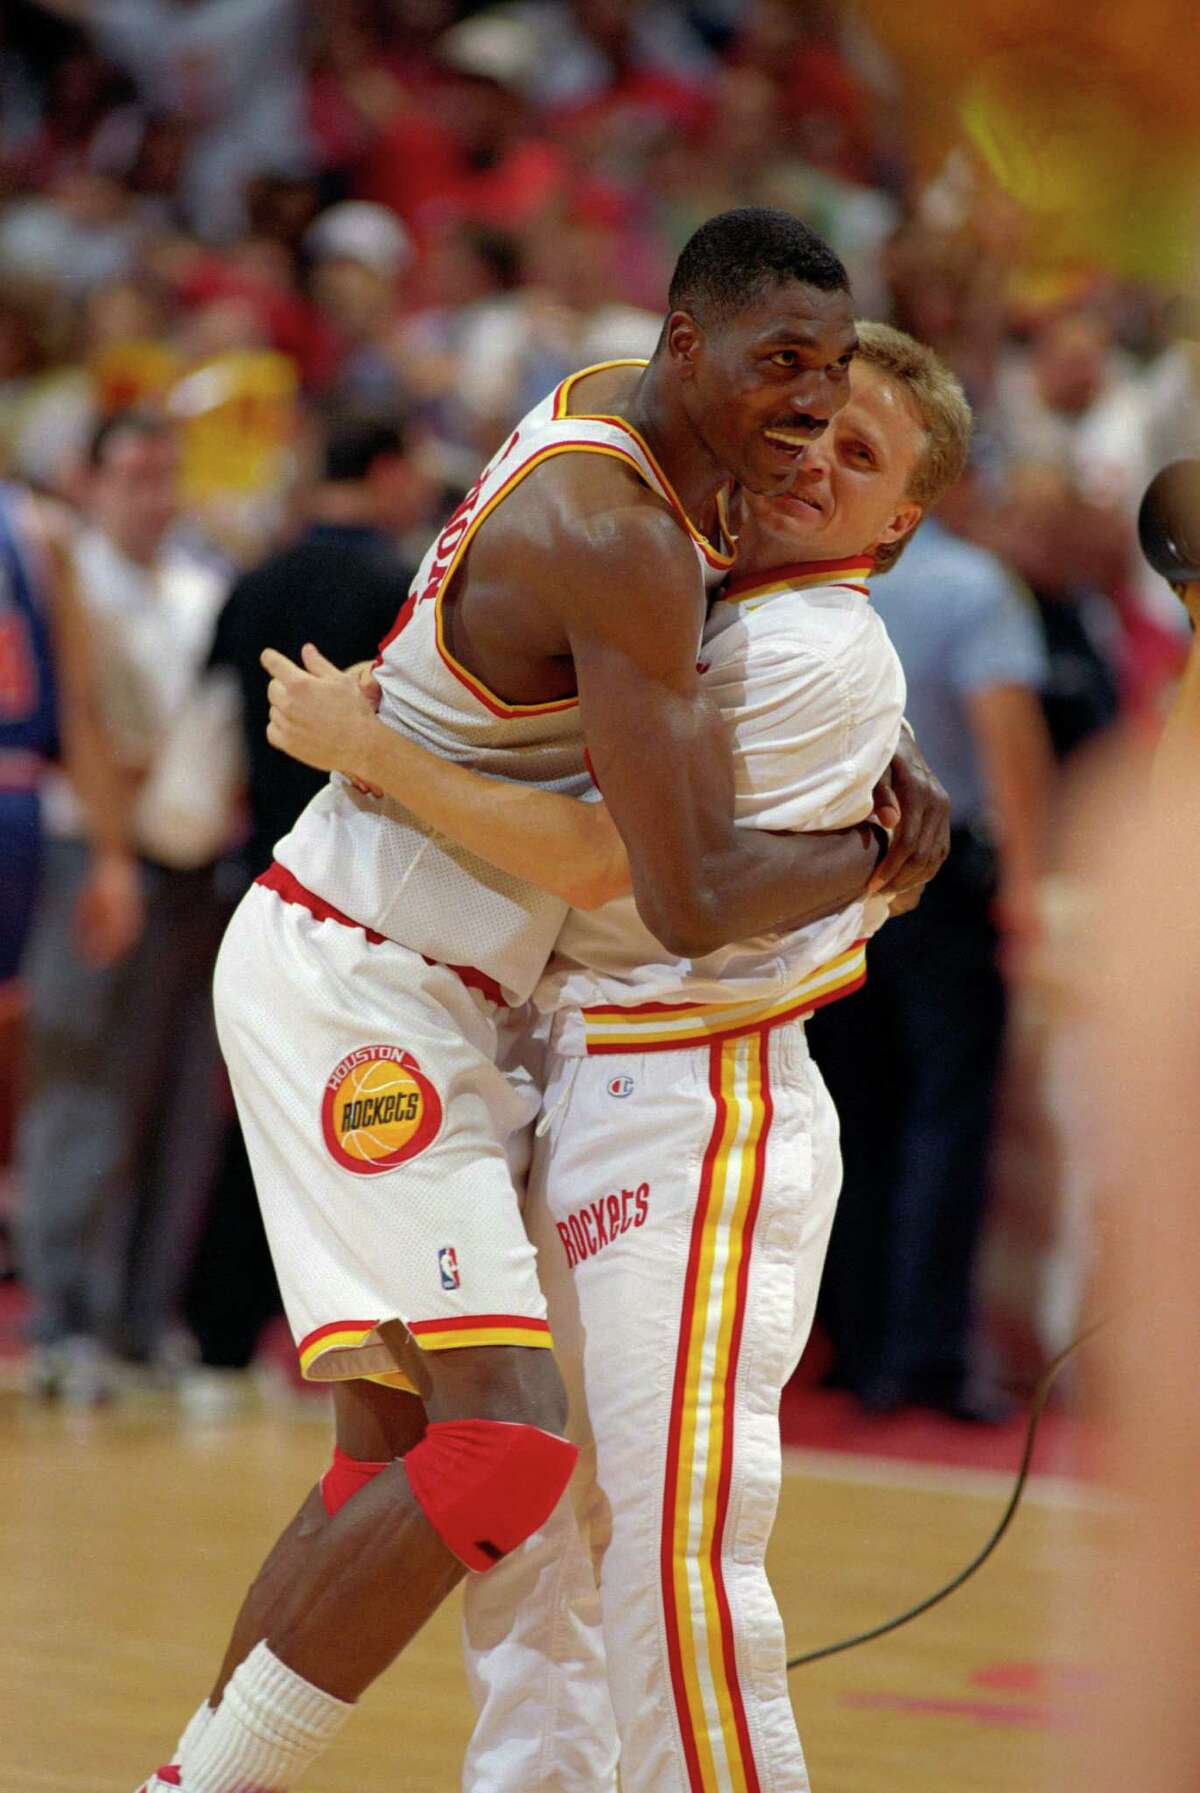 Hakeem Olajuwon and teammate Scott Brooks celebrate after the Rockets won the NBA title on June 22, 1994, rising from the depths of Choke City in Game 3 to winning Game 7 and providing Houston with is first major sports championship.